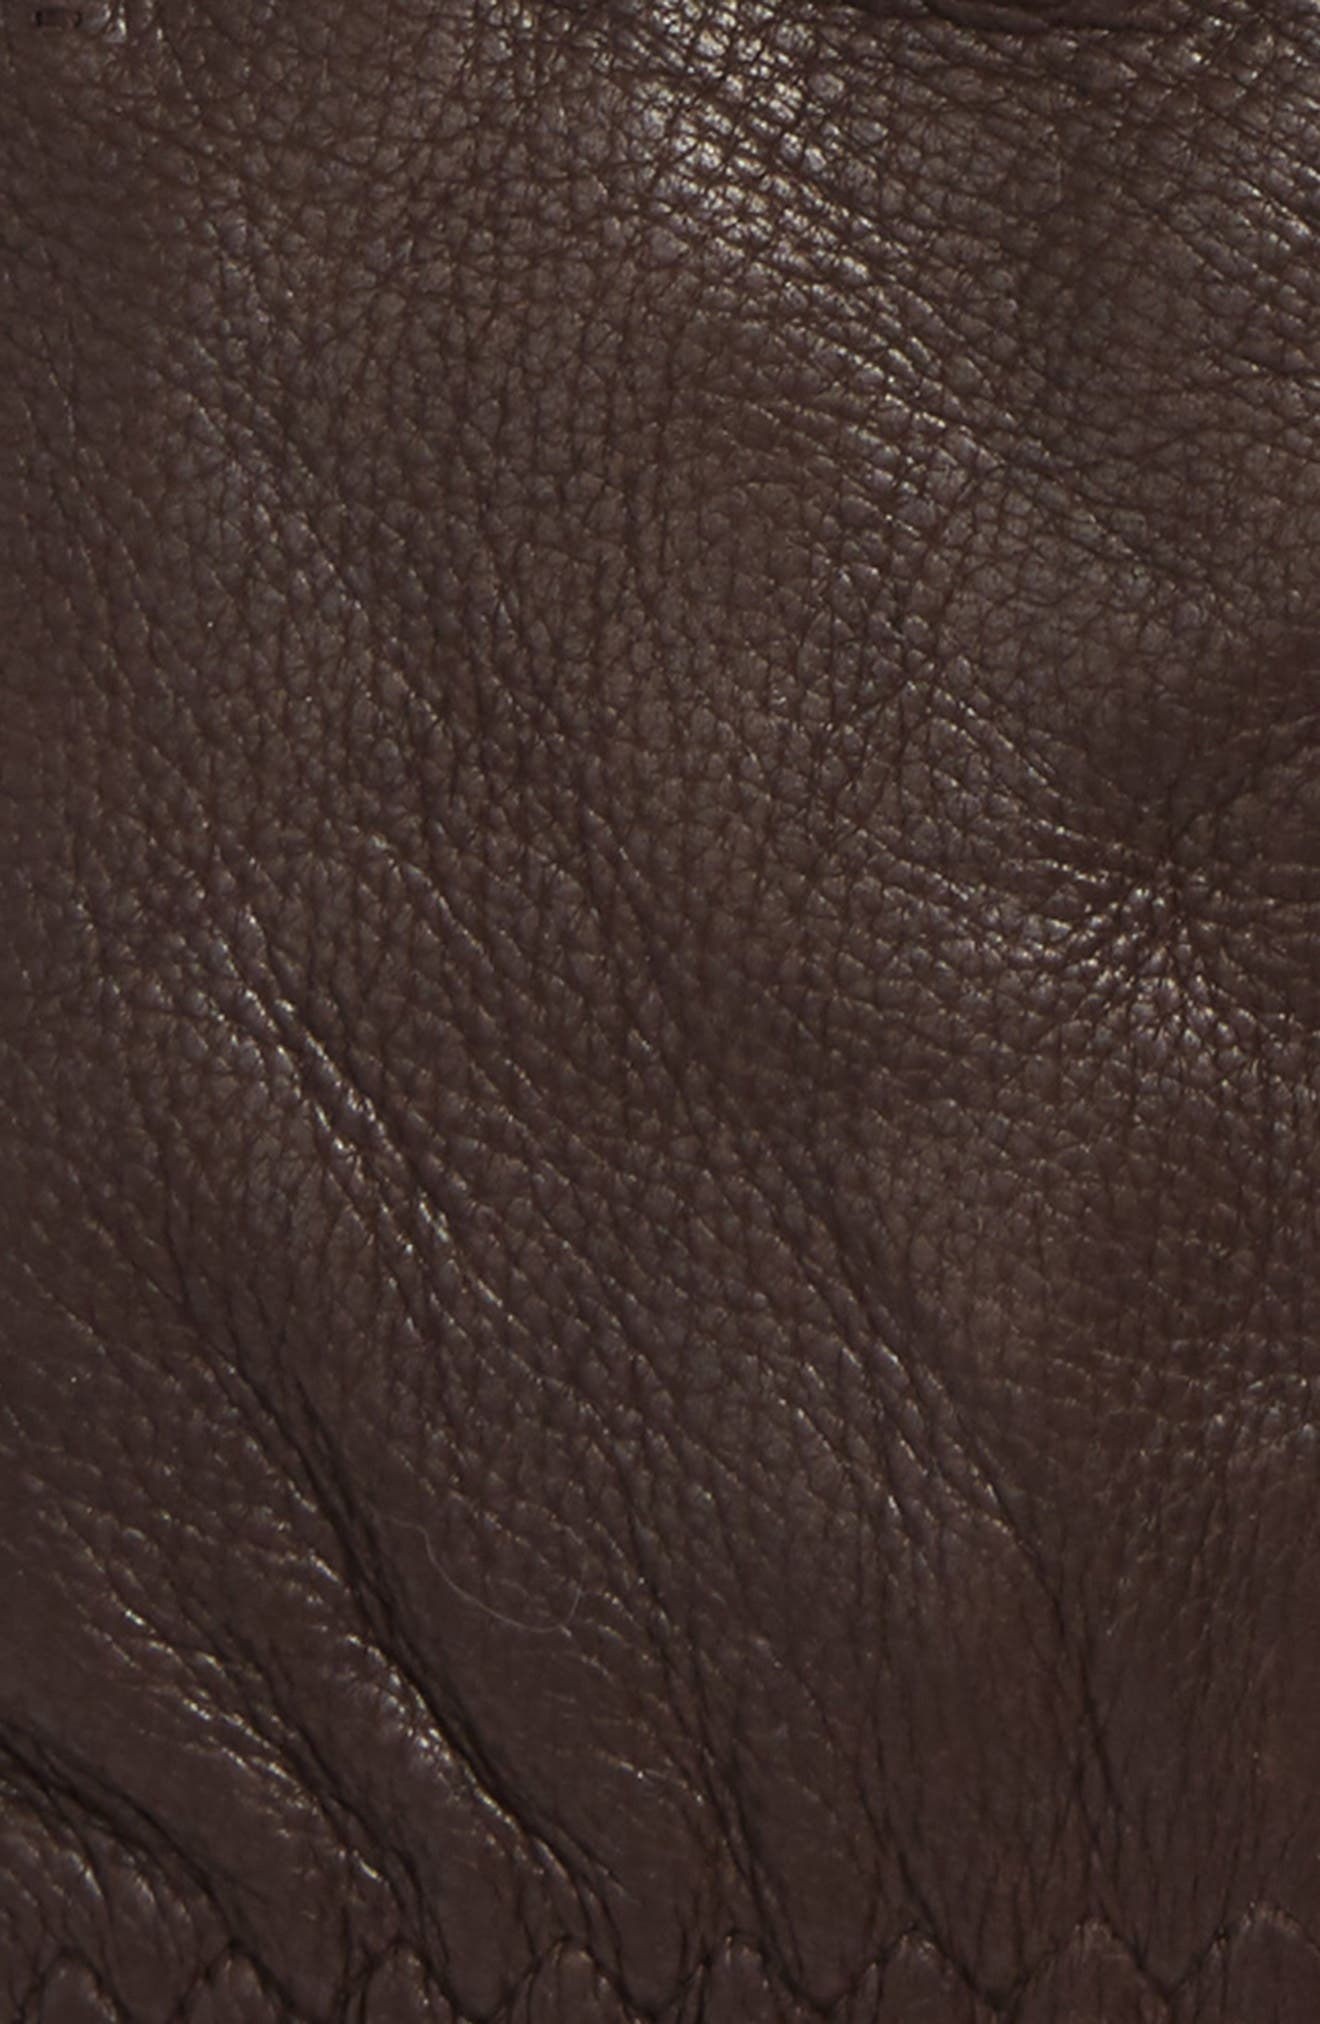 Deerskin Leather Gloves,                             Alternate thumbnail 2, color,                             Chocolate